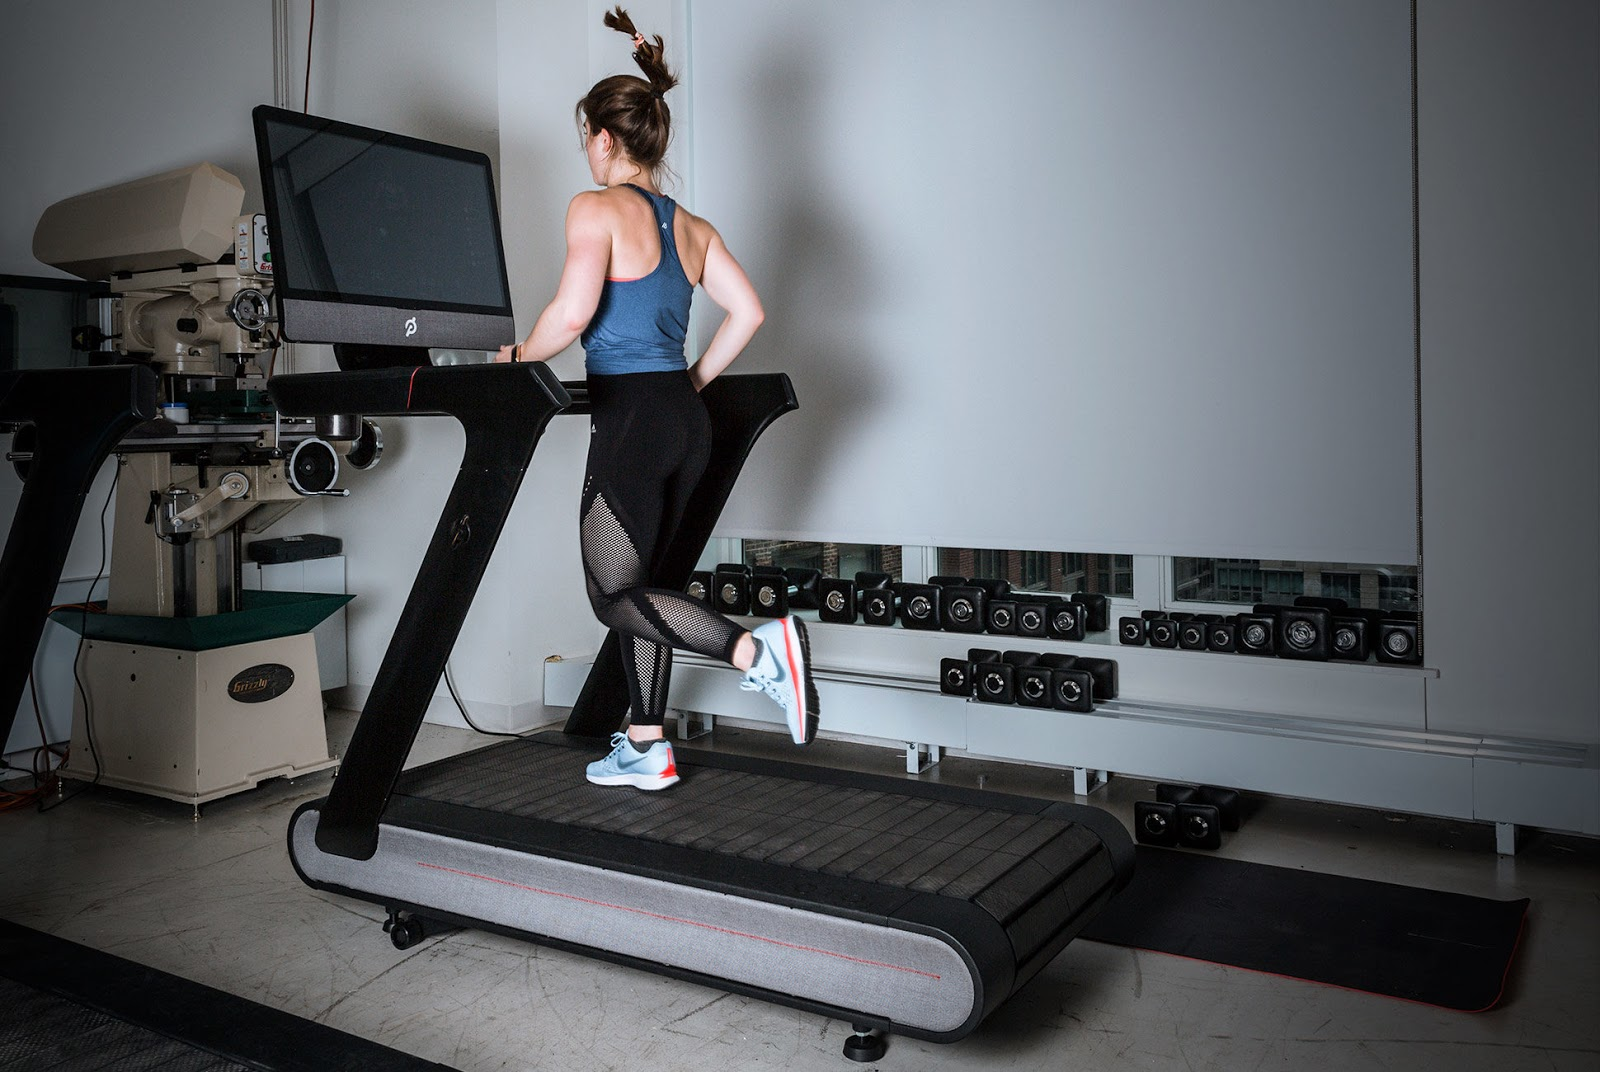 Best Treadmill 2020 For Home.Best Treadmills For Home Use 2020 Geek Sip